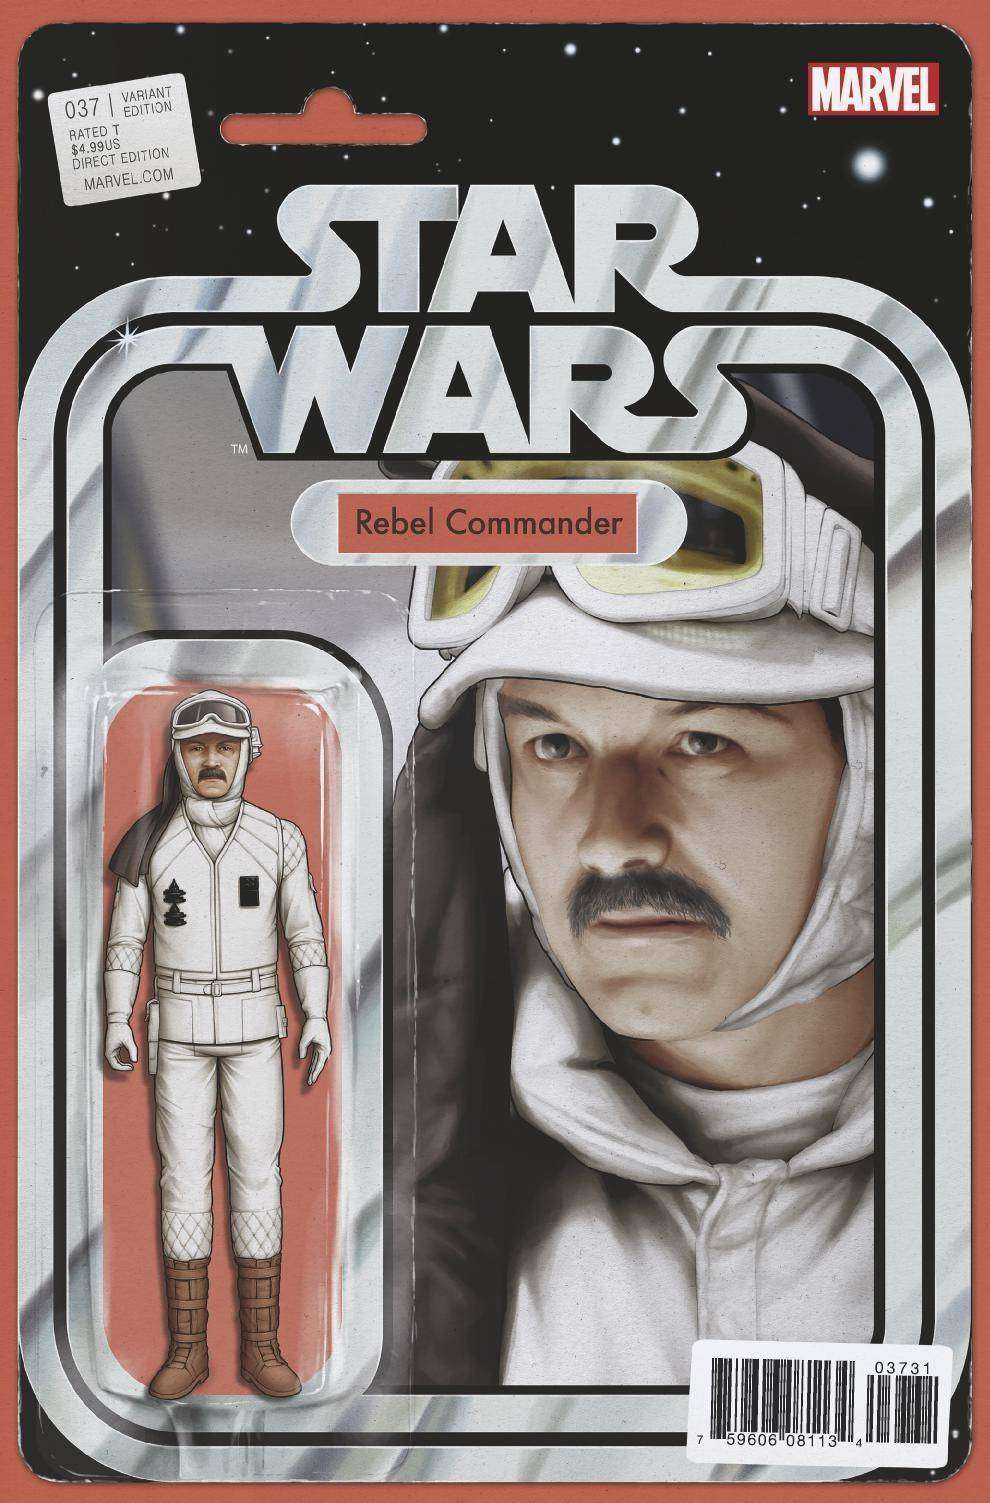 Star Wars #37 Action figure variant, Rebel Commander